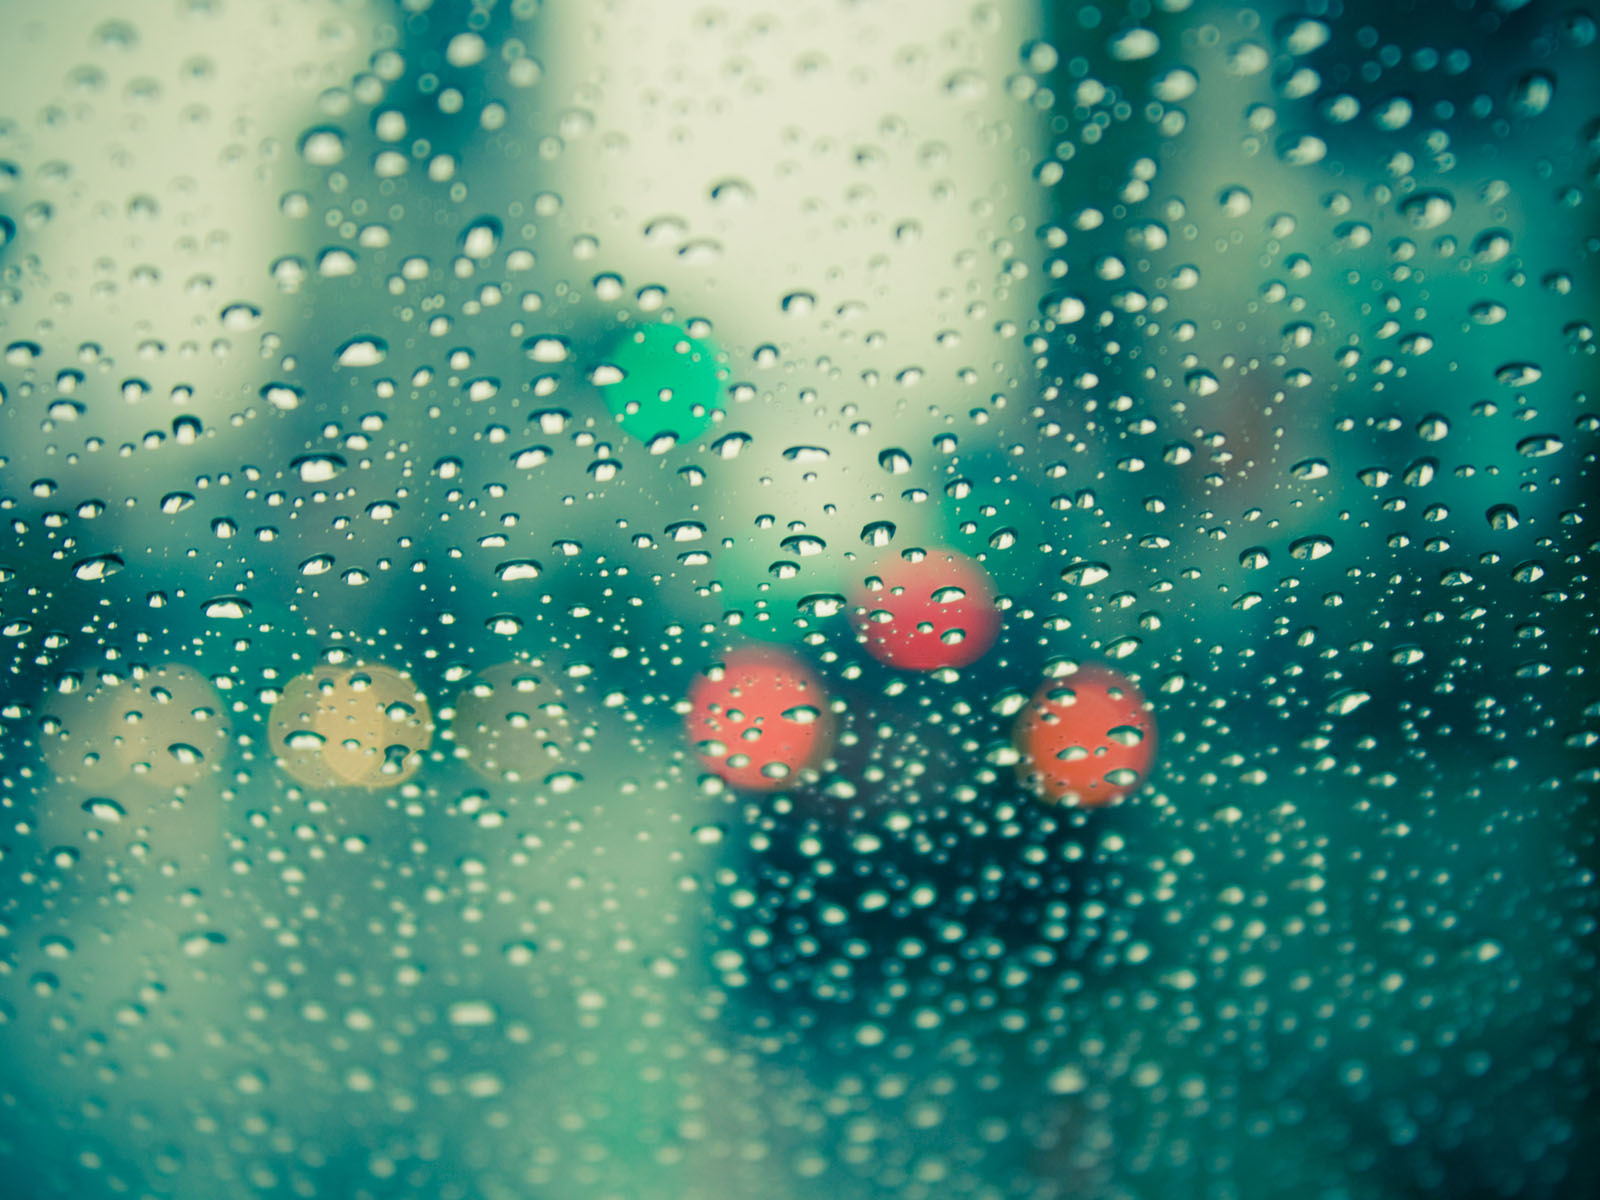 Rain-Drops-on-Glass-Wallpapers-3